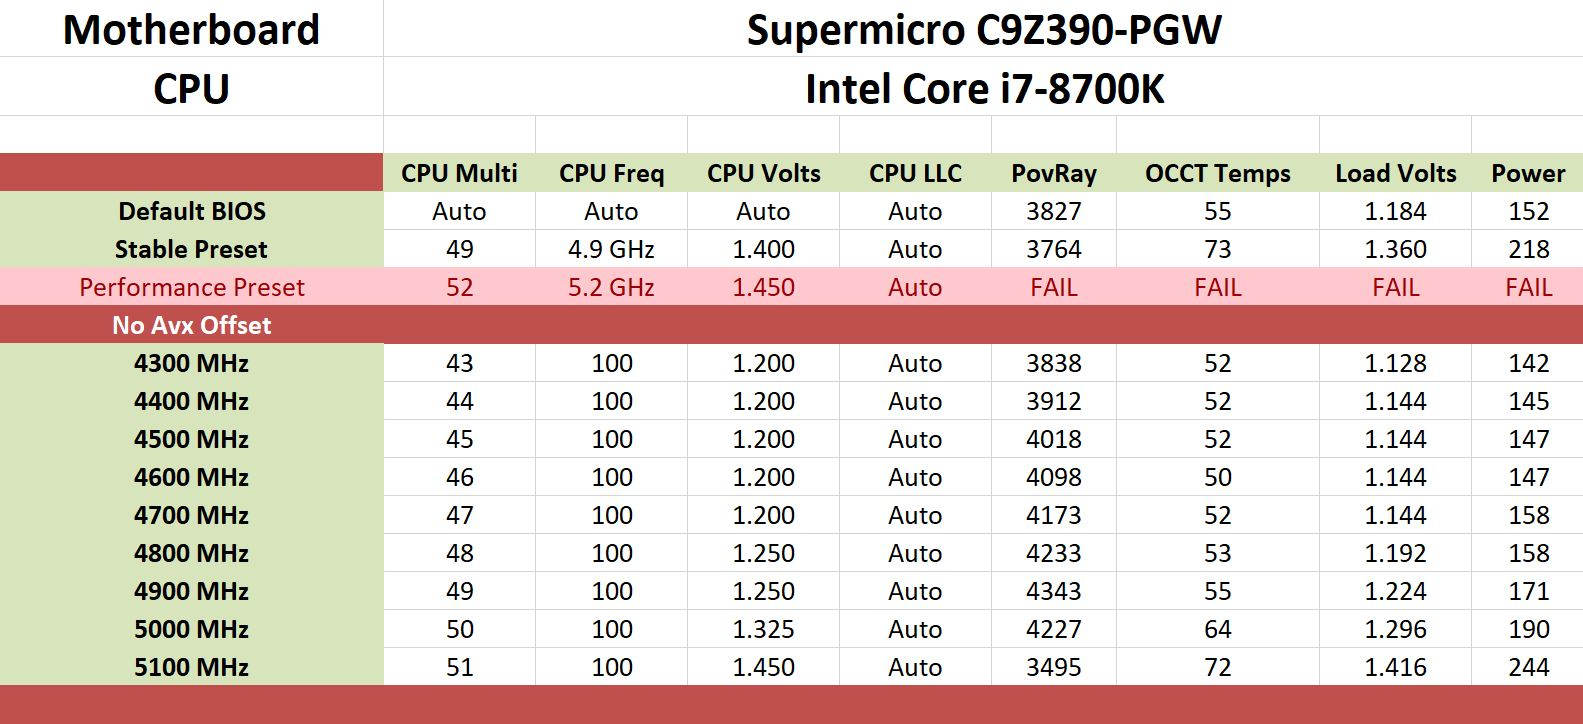 Overclocking - The Supermicro C9Z390-PGW Motherboard Review